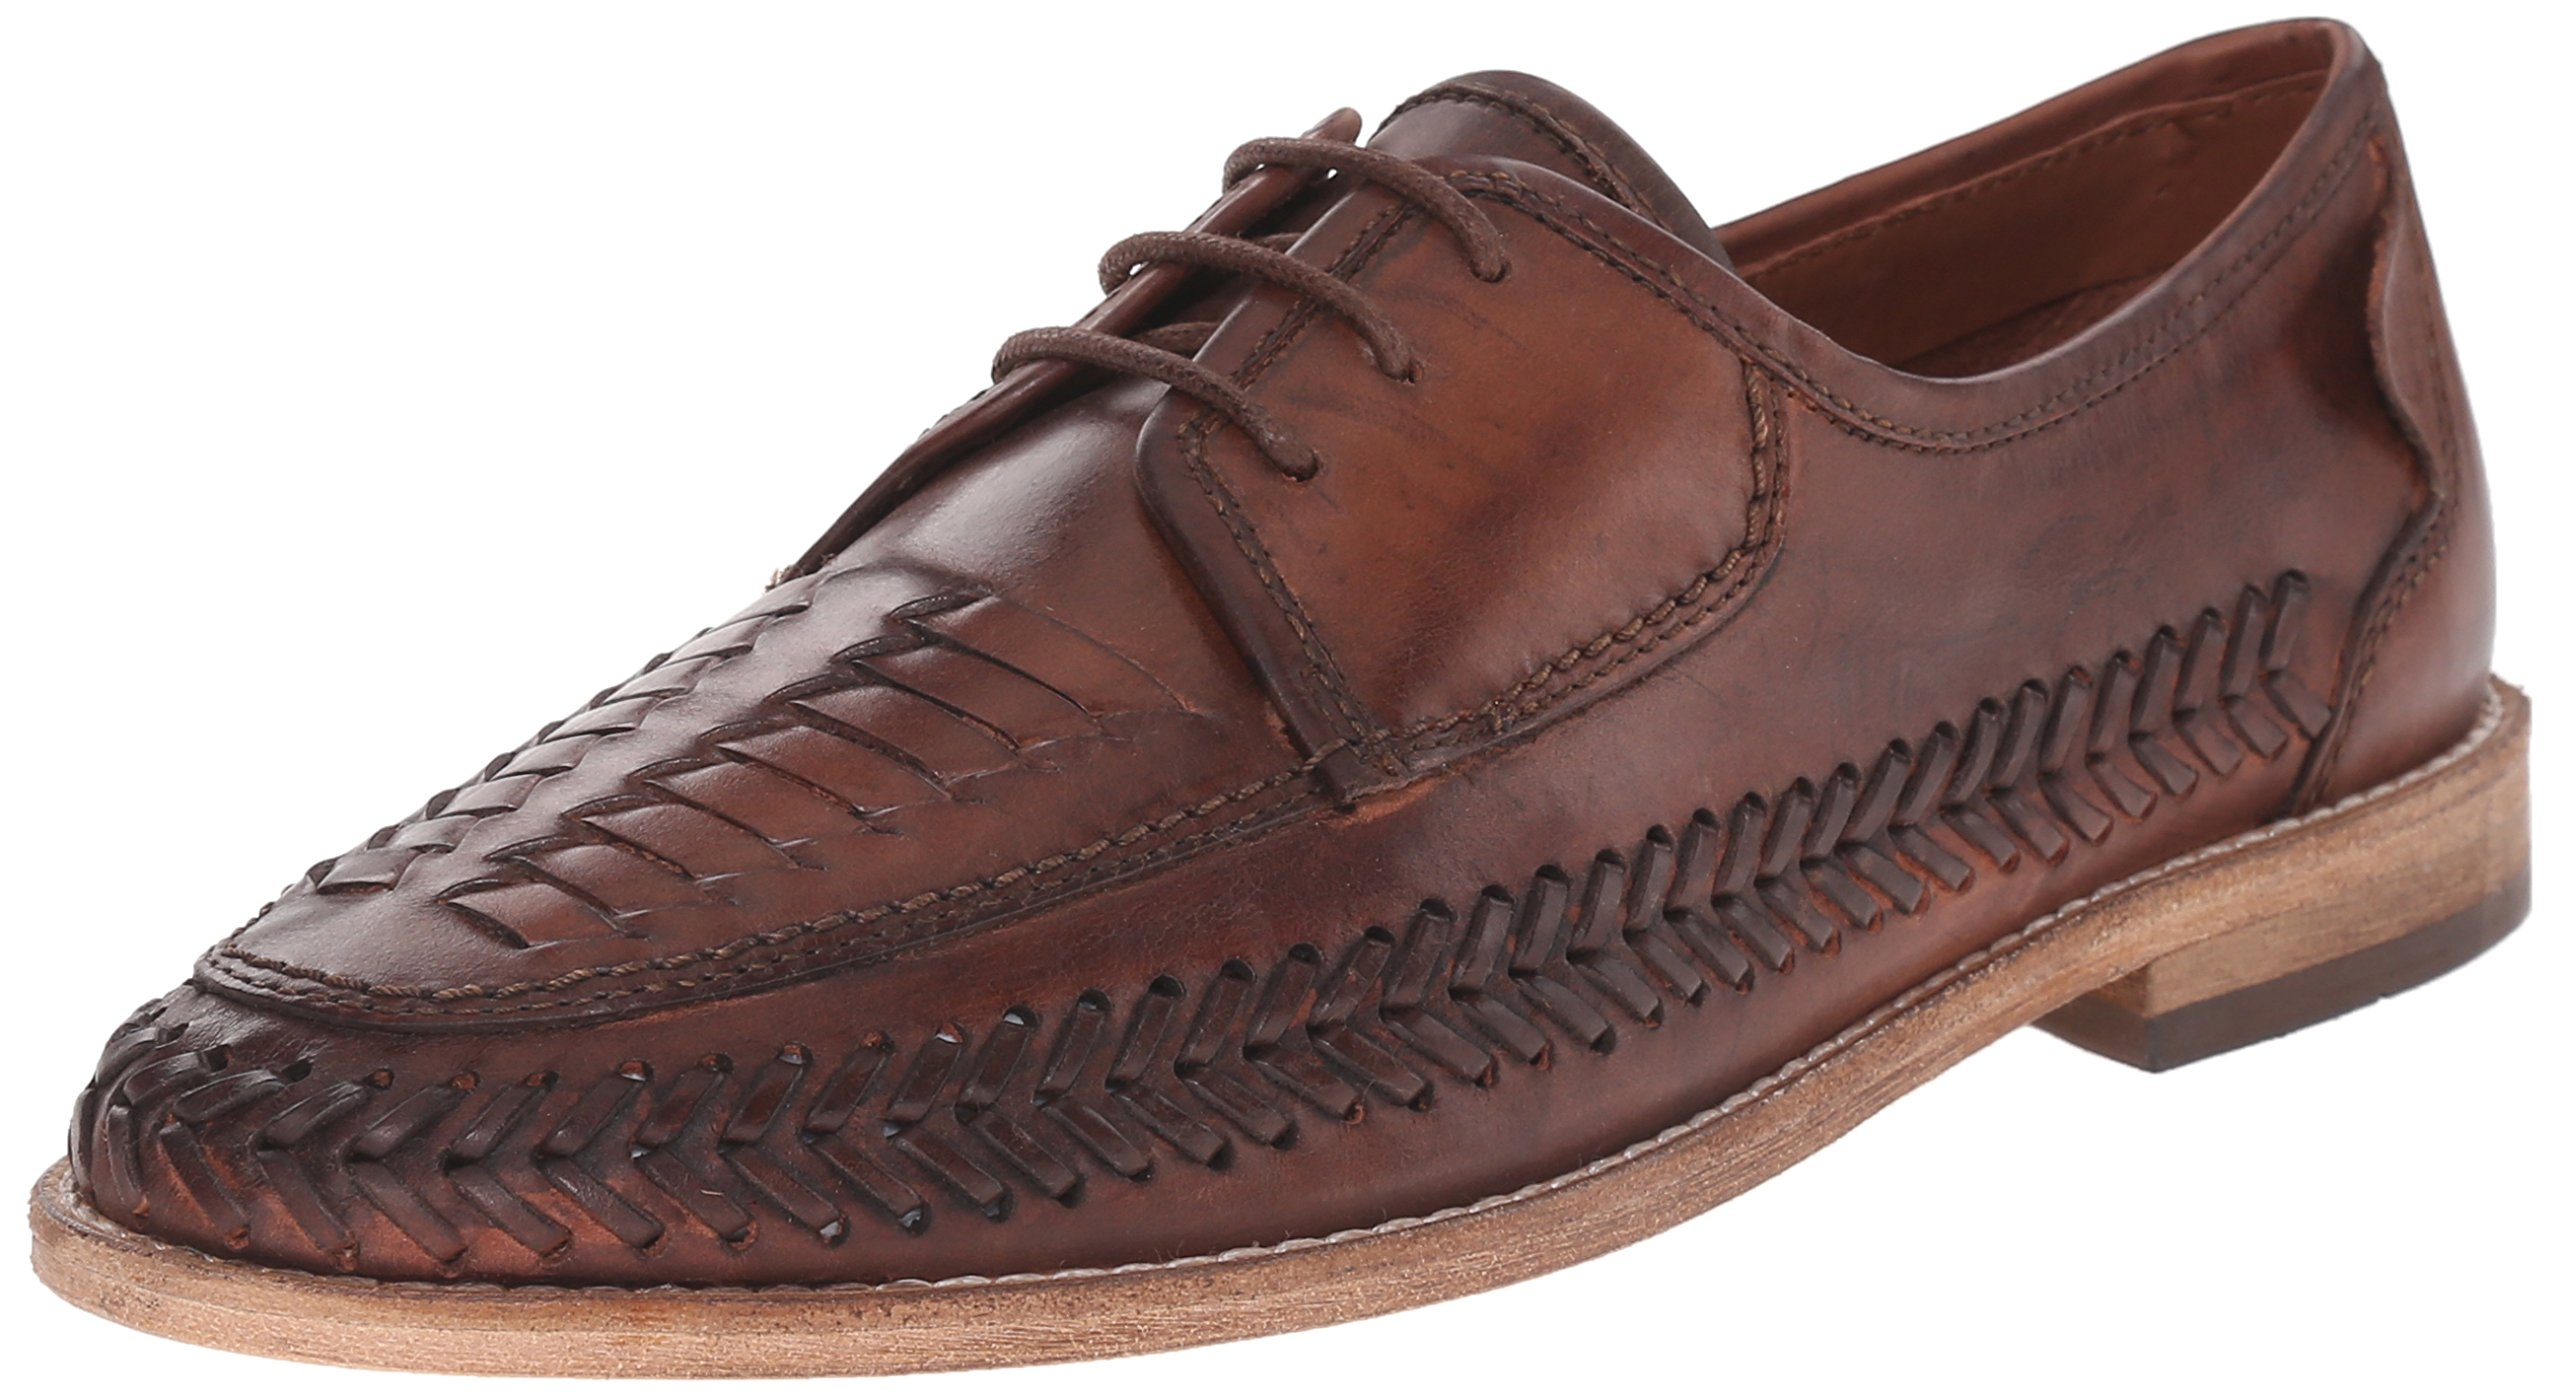 H by Hudson Men's Anfa Oxford, Cognac, 40 EU/7 M US